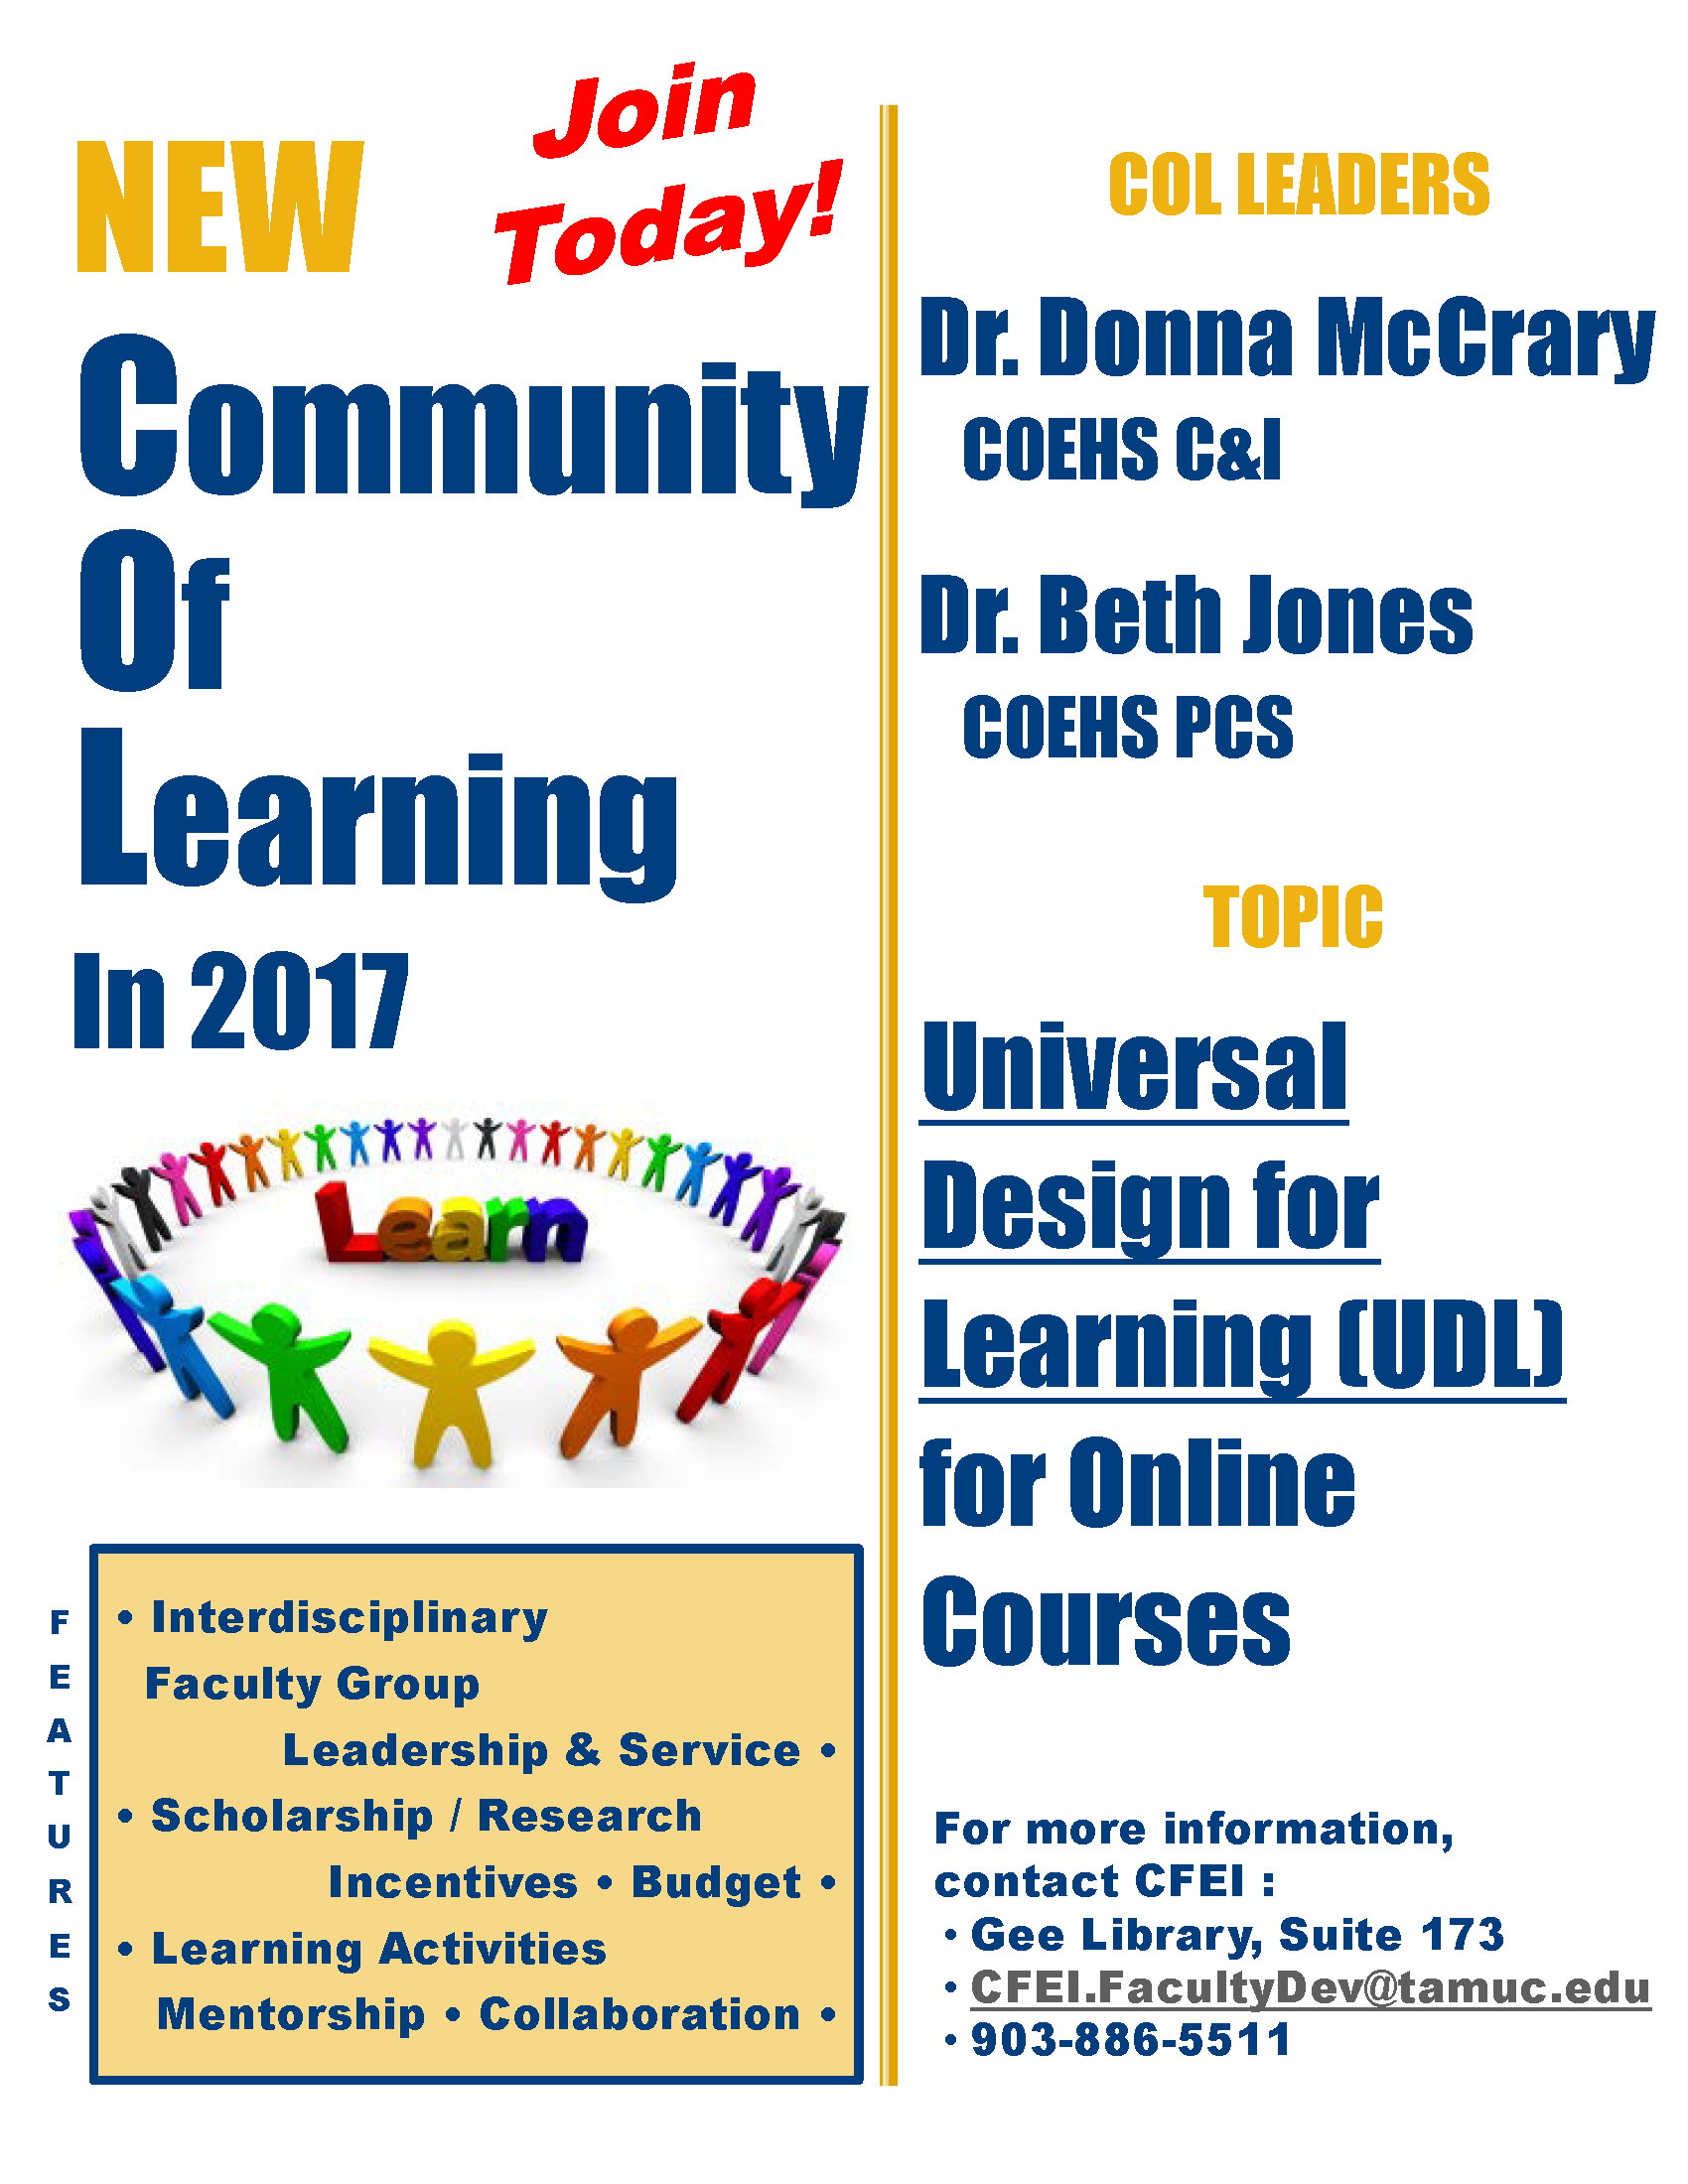 Join today! NEW Community of Learning in 2017. COL Leaders: Dr. Donna McCrary, COEHS C&I, Dr. Beth Jones, COEHS PCS. Topic: Universal Design for Learning (UDL) for Online Courses. Features: Interdisciplinary faculty group, leadership and service, scholarship/research, incentives, budget, learning activities, mentorship, collaboration. For more information, contact CFEI: Gee Library, Suite 173, CFEI.FacultyDev@tamuc.edu, 903-886-5511